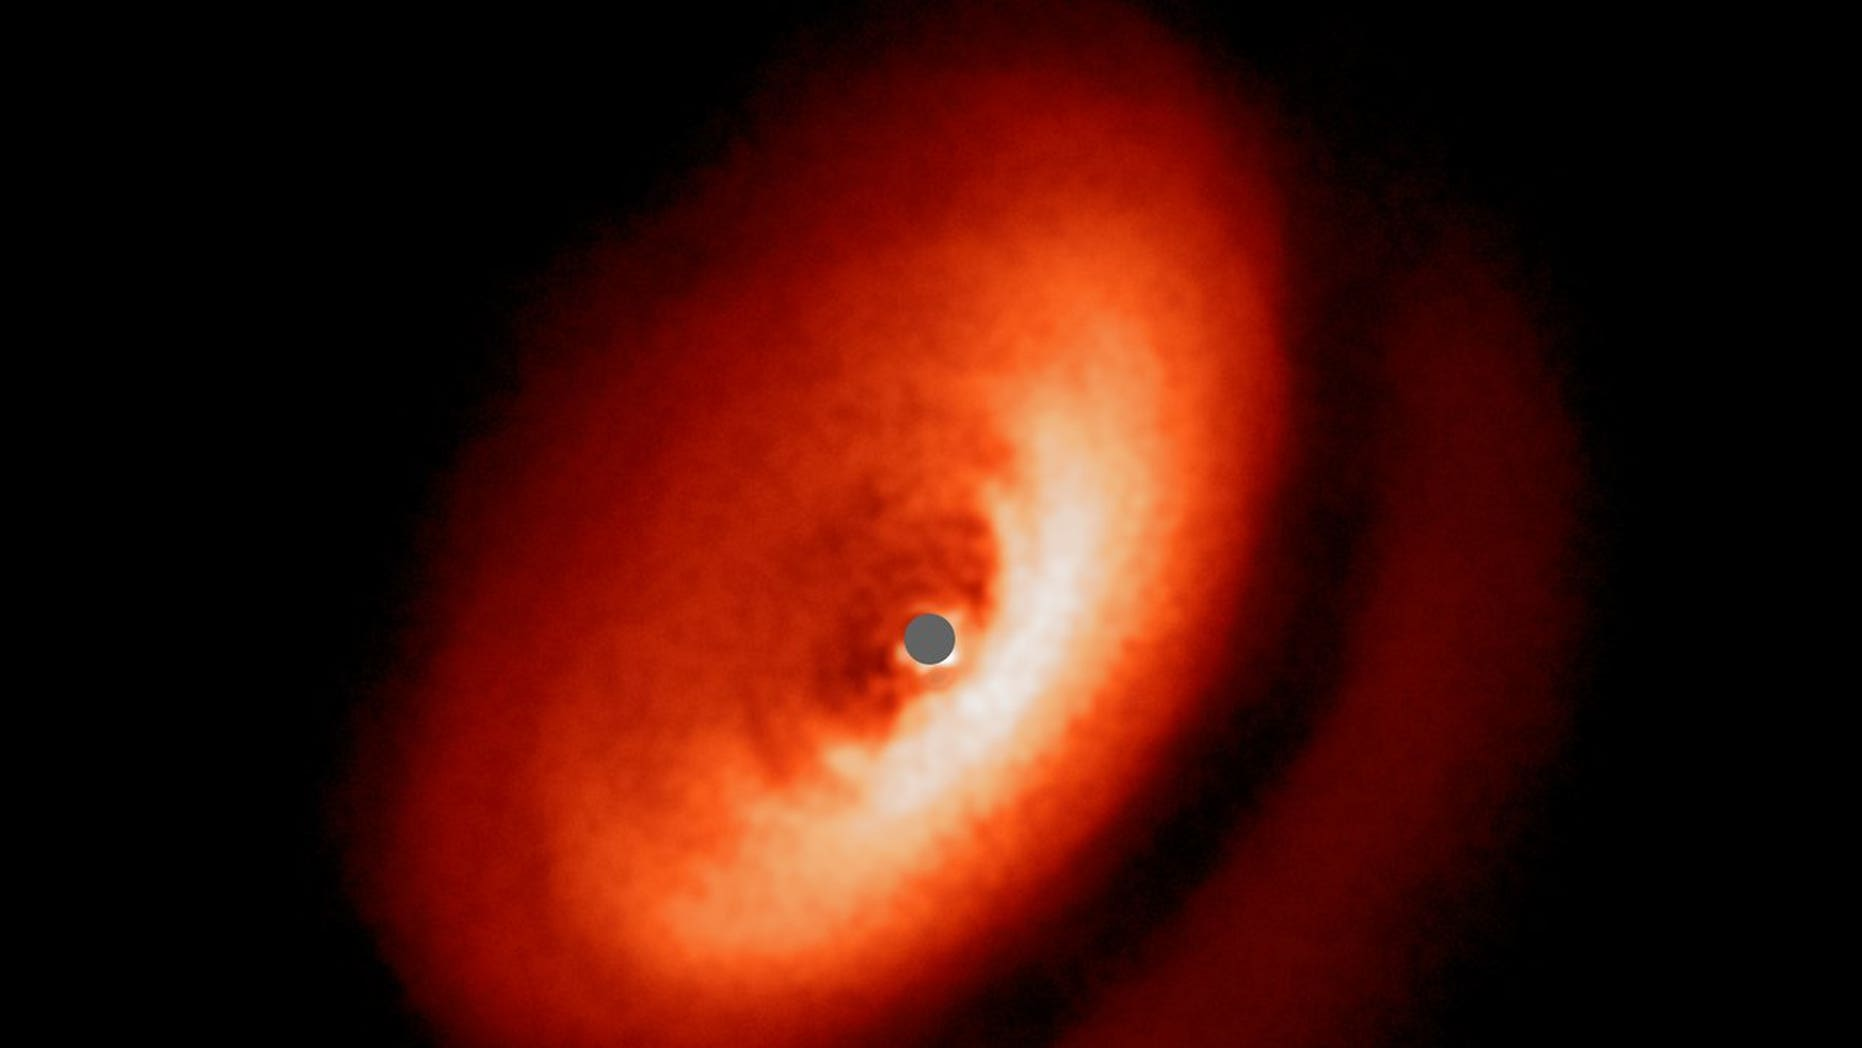 An image from the Very Large Telescope's SPHERE instrument showing the dusty disk around the young star IM Lupi.